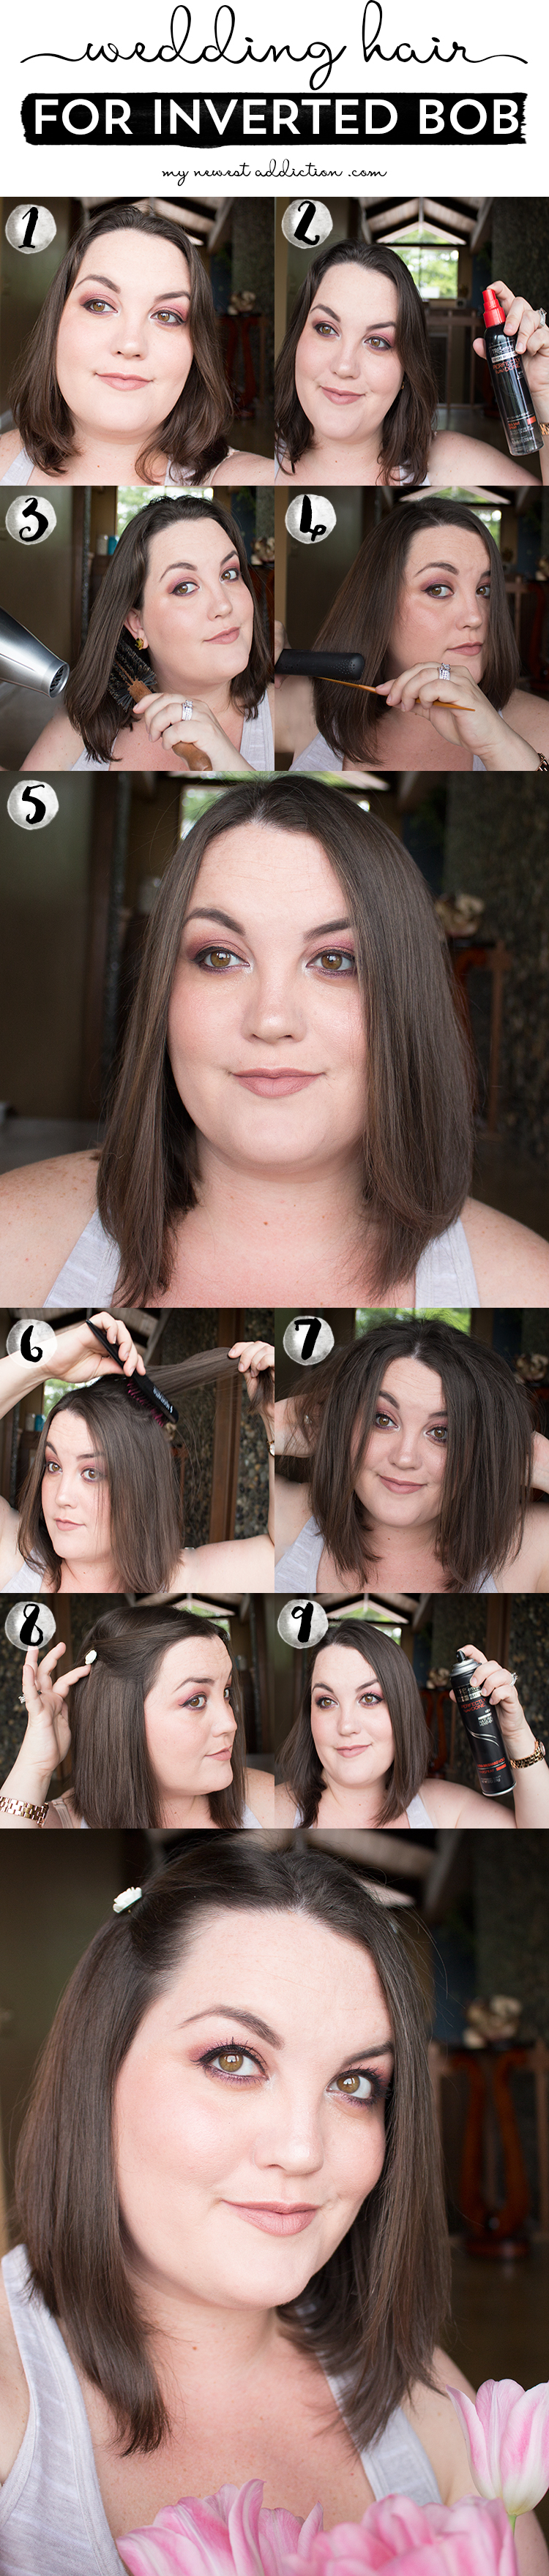 Wedding Hair For Inverted Bob